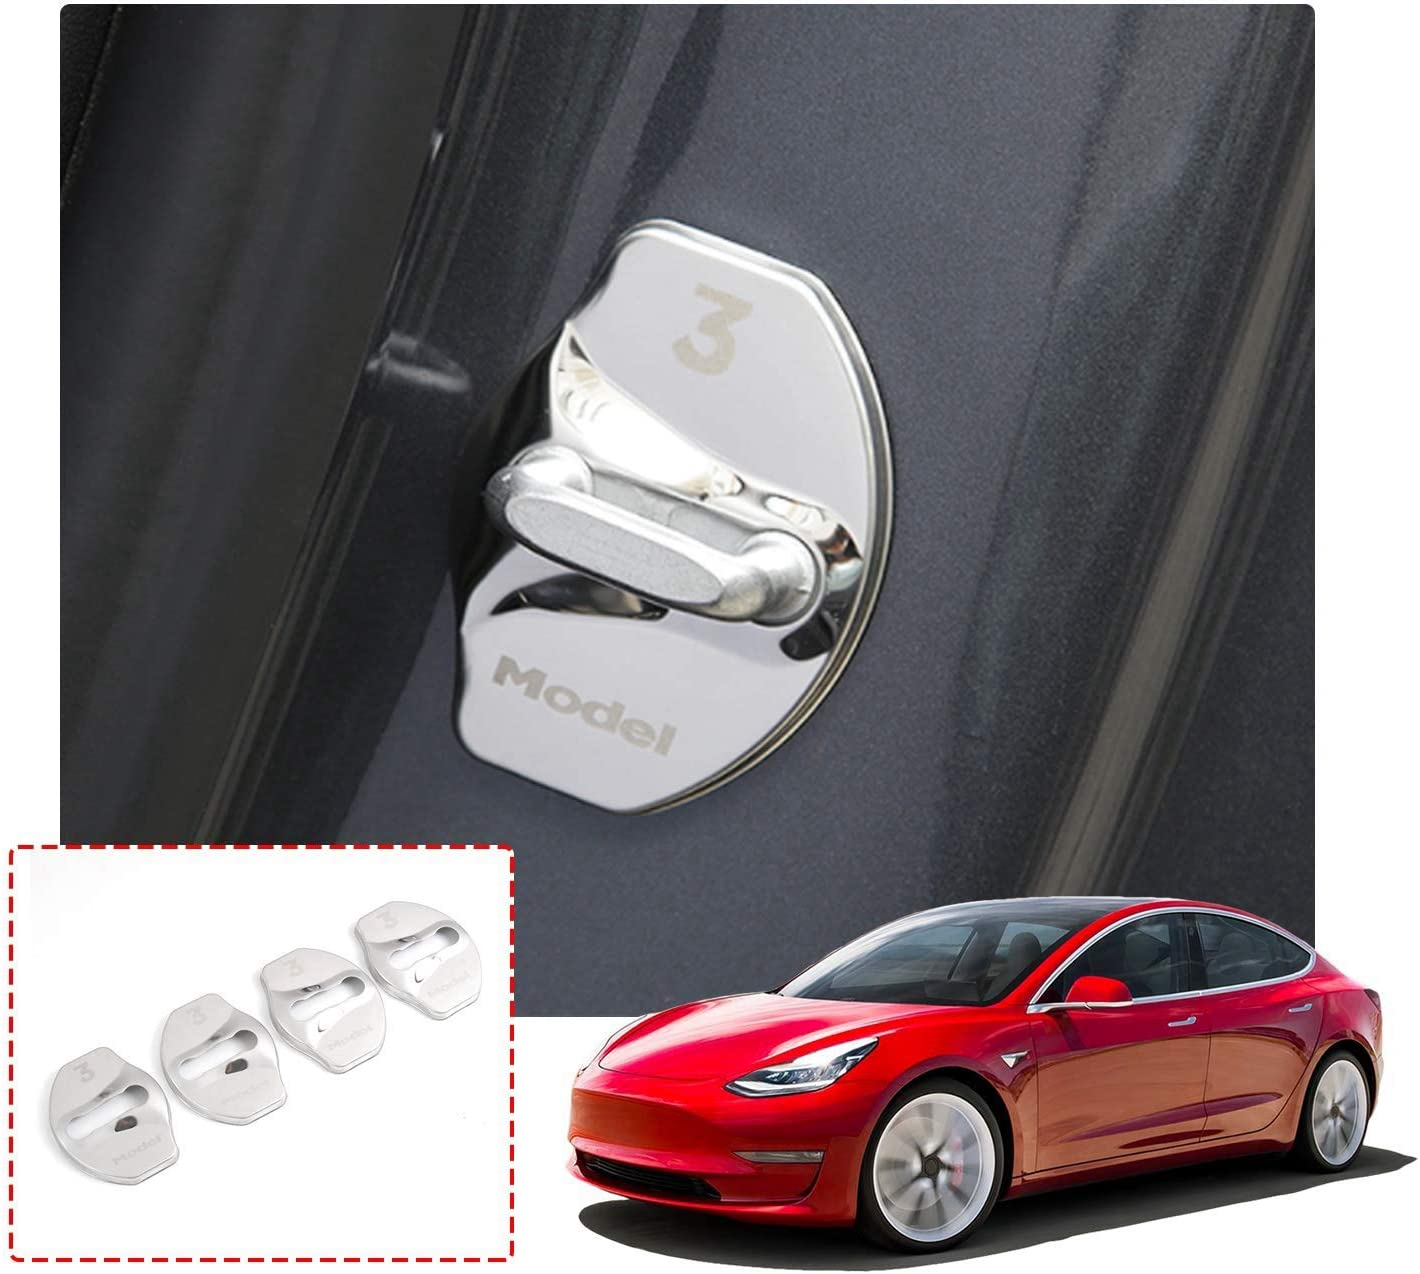 BougeRV Tesla Model 3 Stainless Steel Car Door Lock Latches Cover Protector